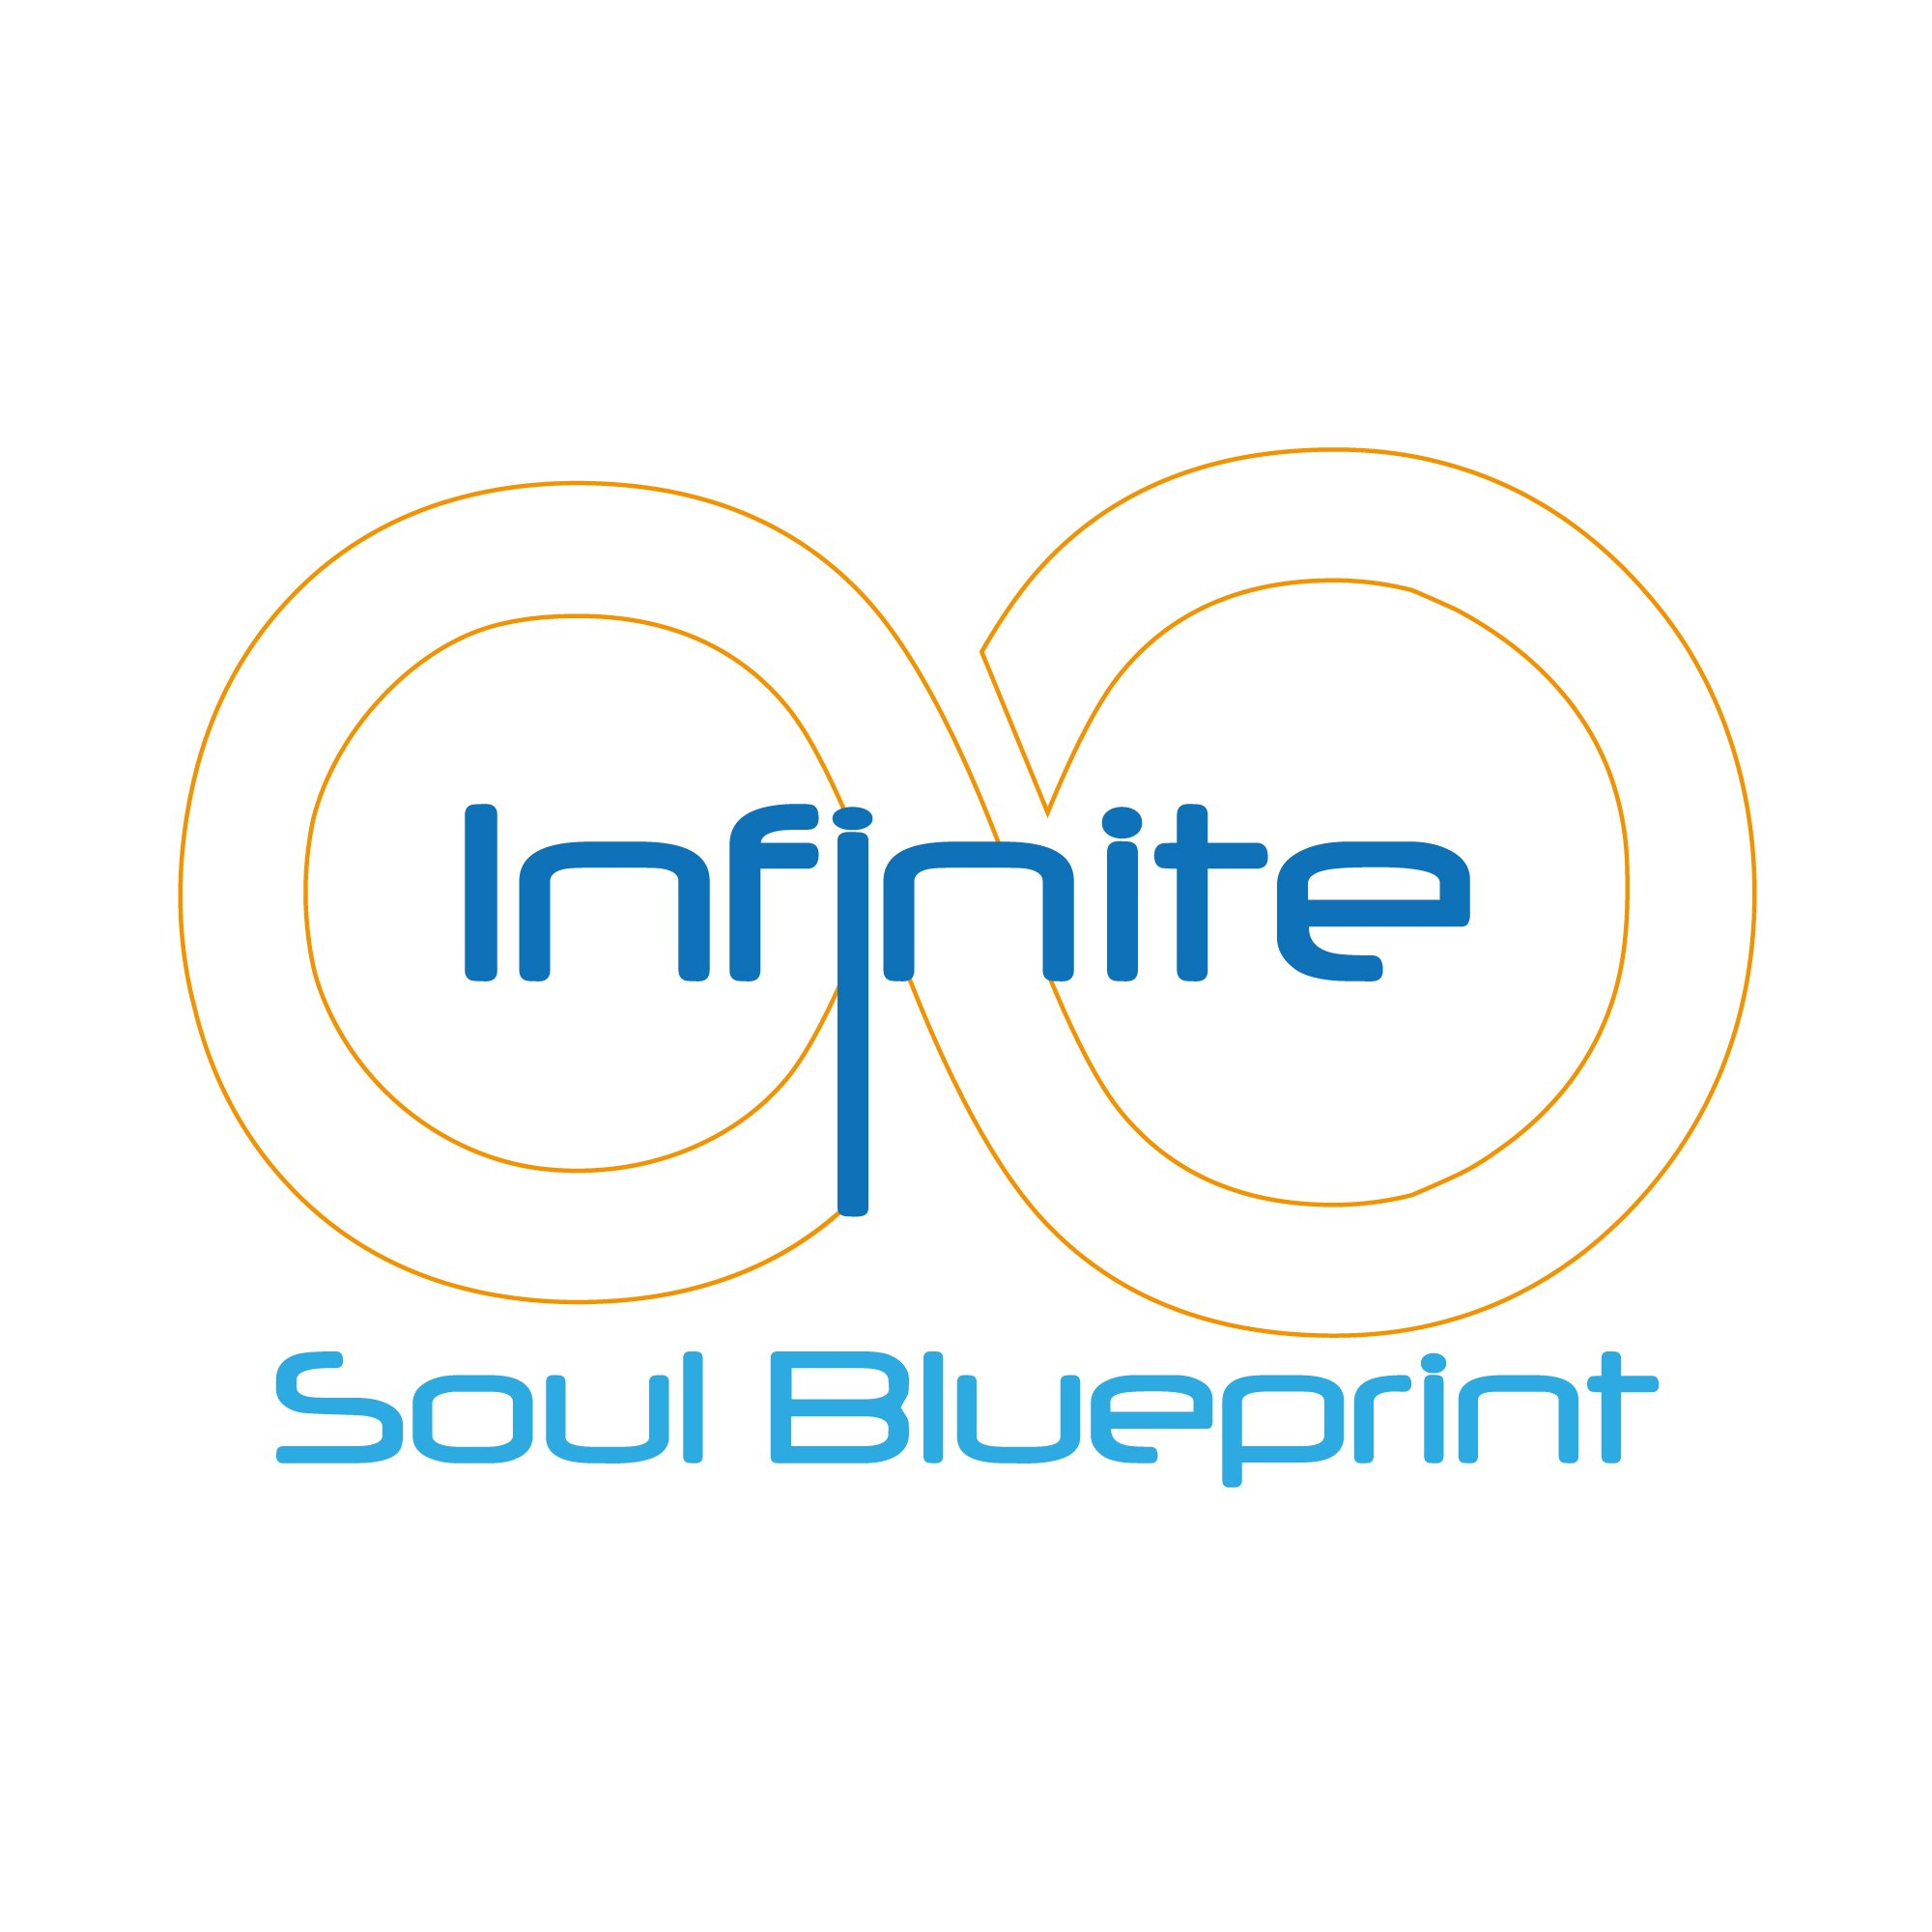 4 signs you are having a spiritual transition infinite soul blueprint 82fe976560591483384087 b11450infinite soul blueprintlogodk1g malvernweather Images